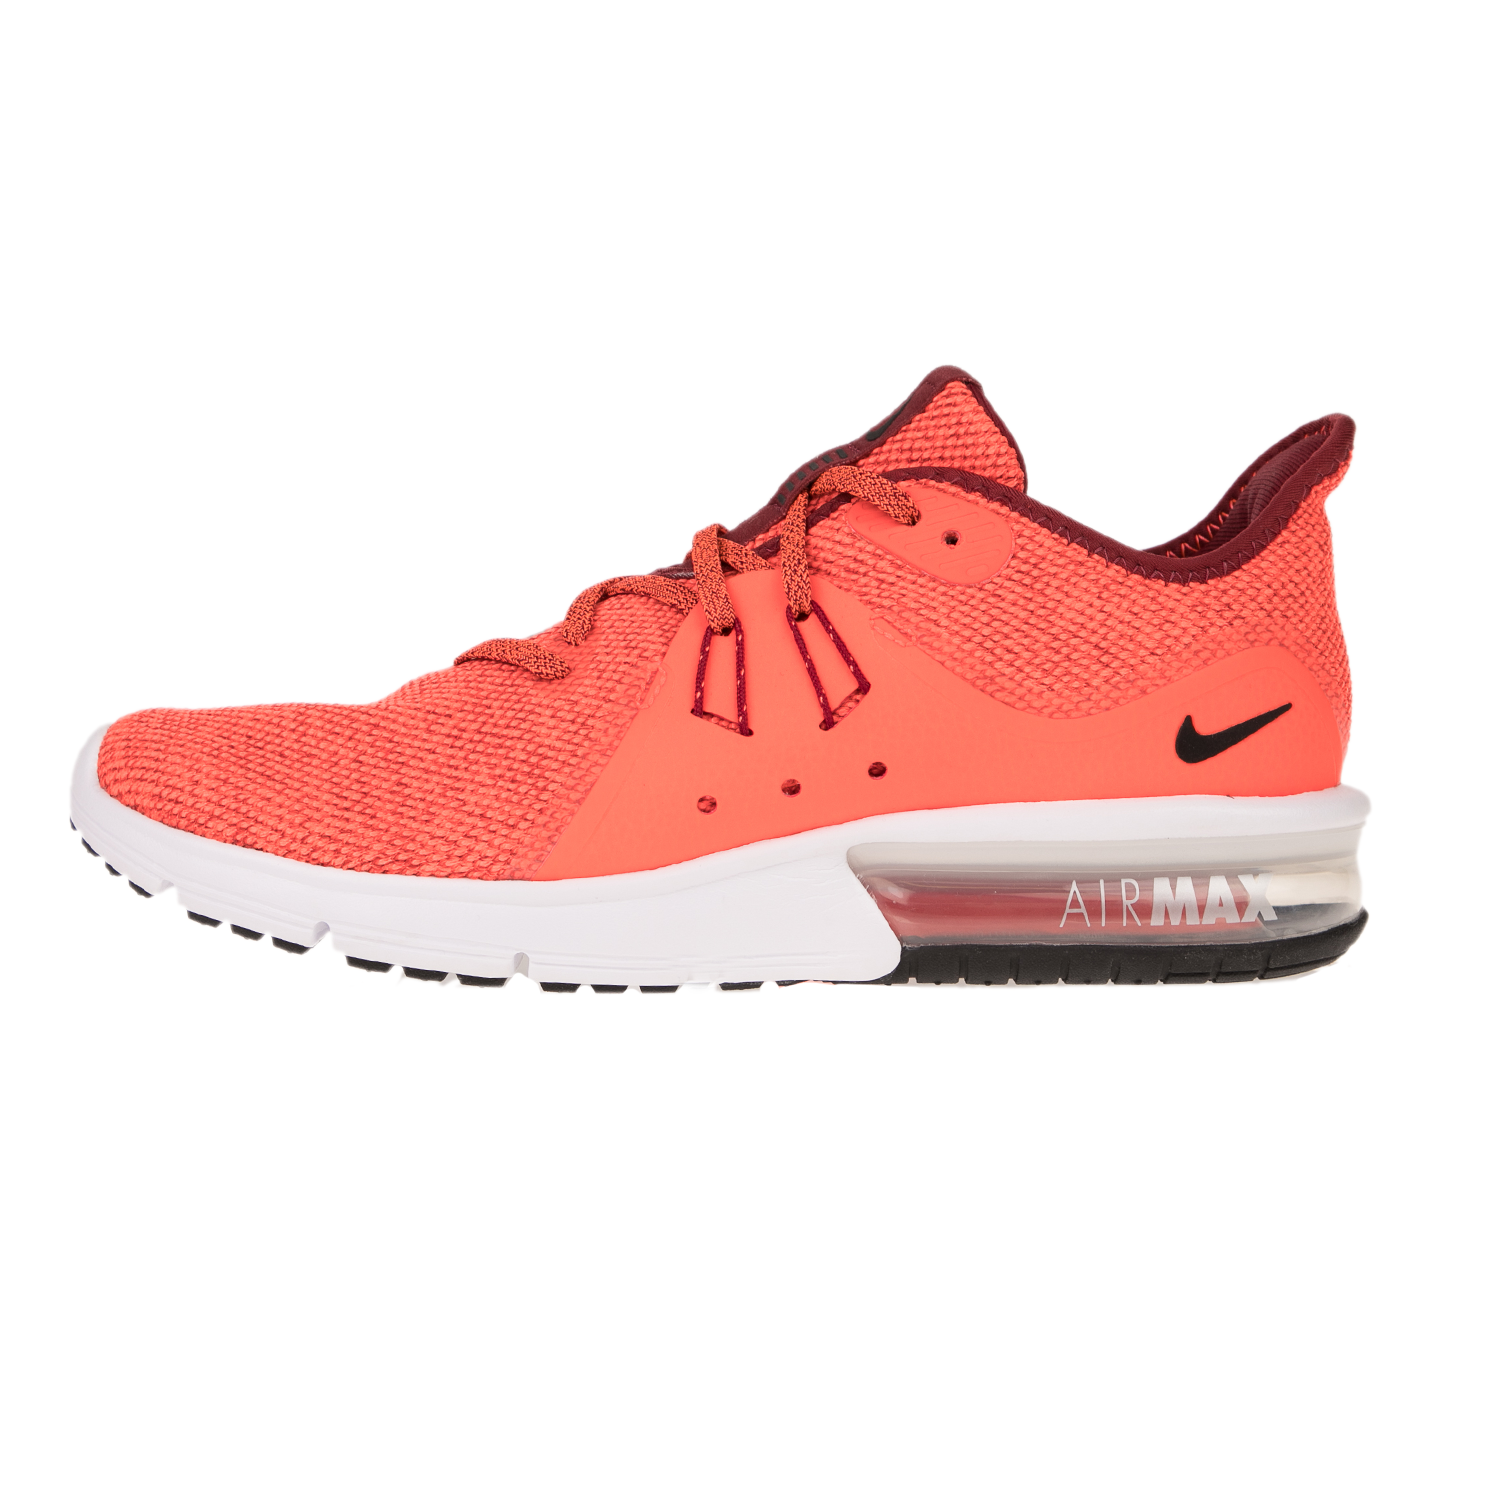 51b703c3055 -40% Factory Outlet NIKE – Ανδρικά παπούτσια NIKE AIR MAX SEQUENT 3  πορτοκαλί